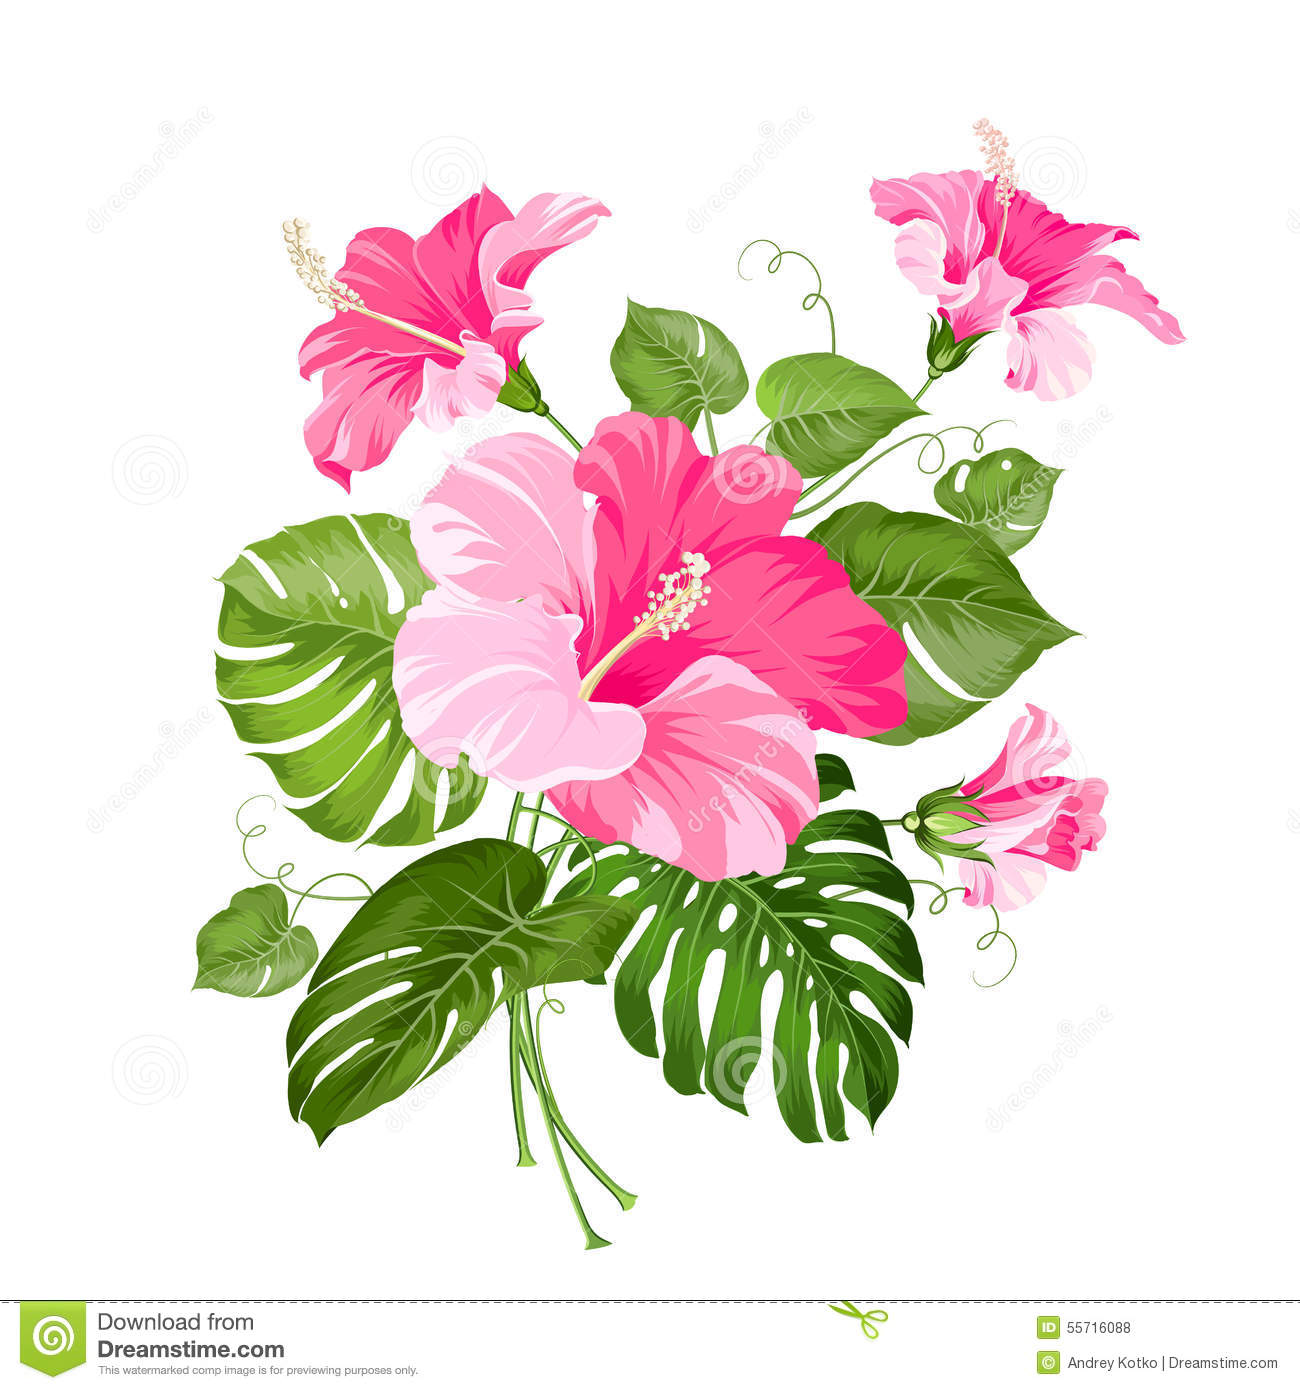 Free pictures of exotic flowers banner free Exotic Vintage Card With Tropical Flowers, Parrots Stock ... banner free